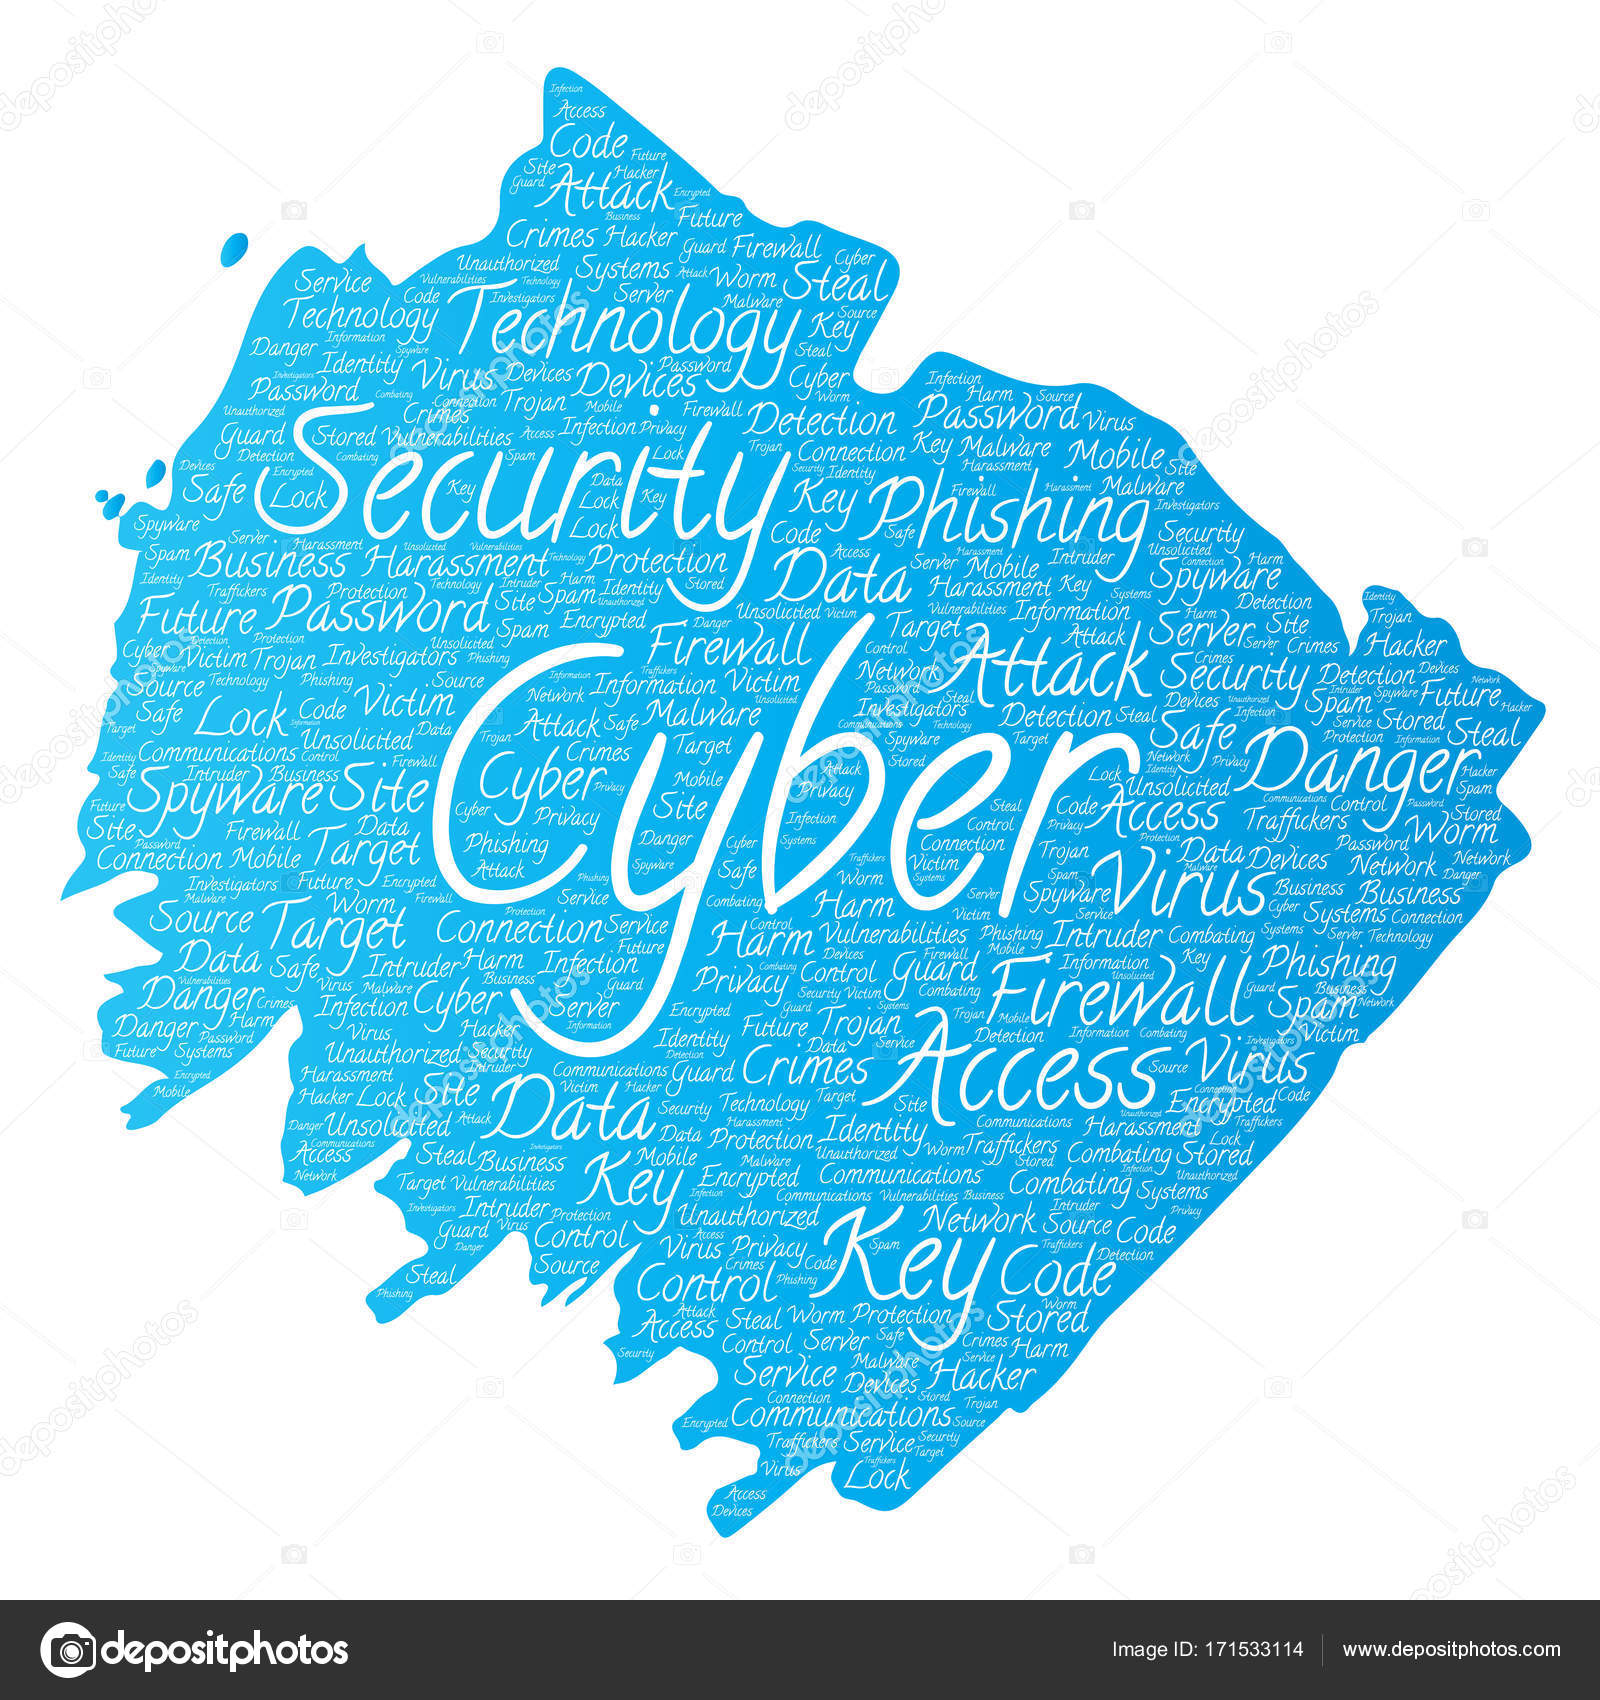 Conceptual cyber security online access technology paint